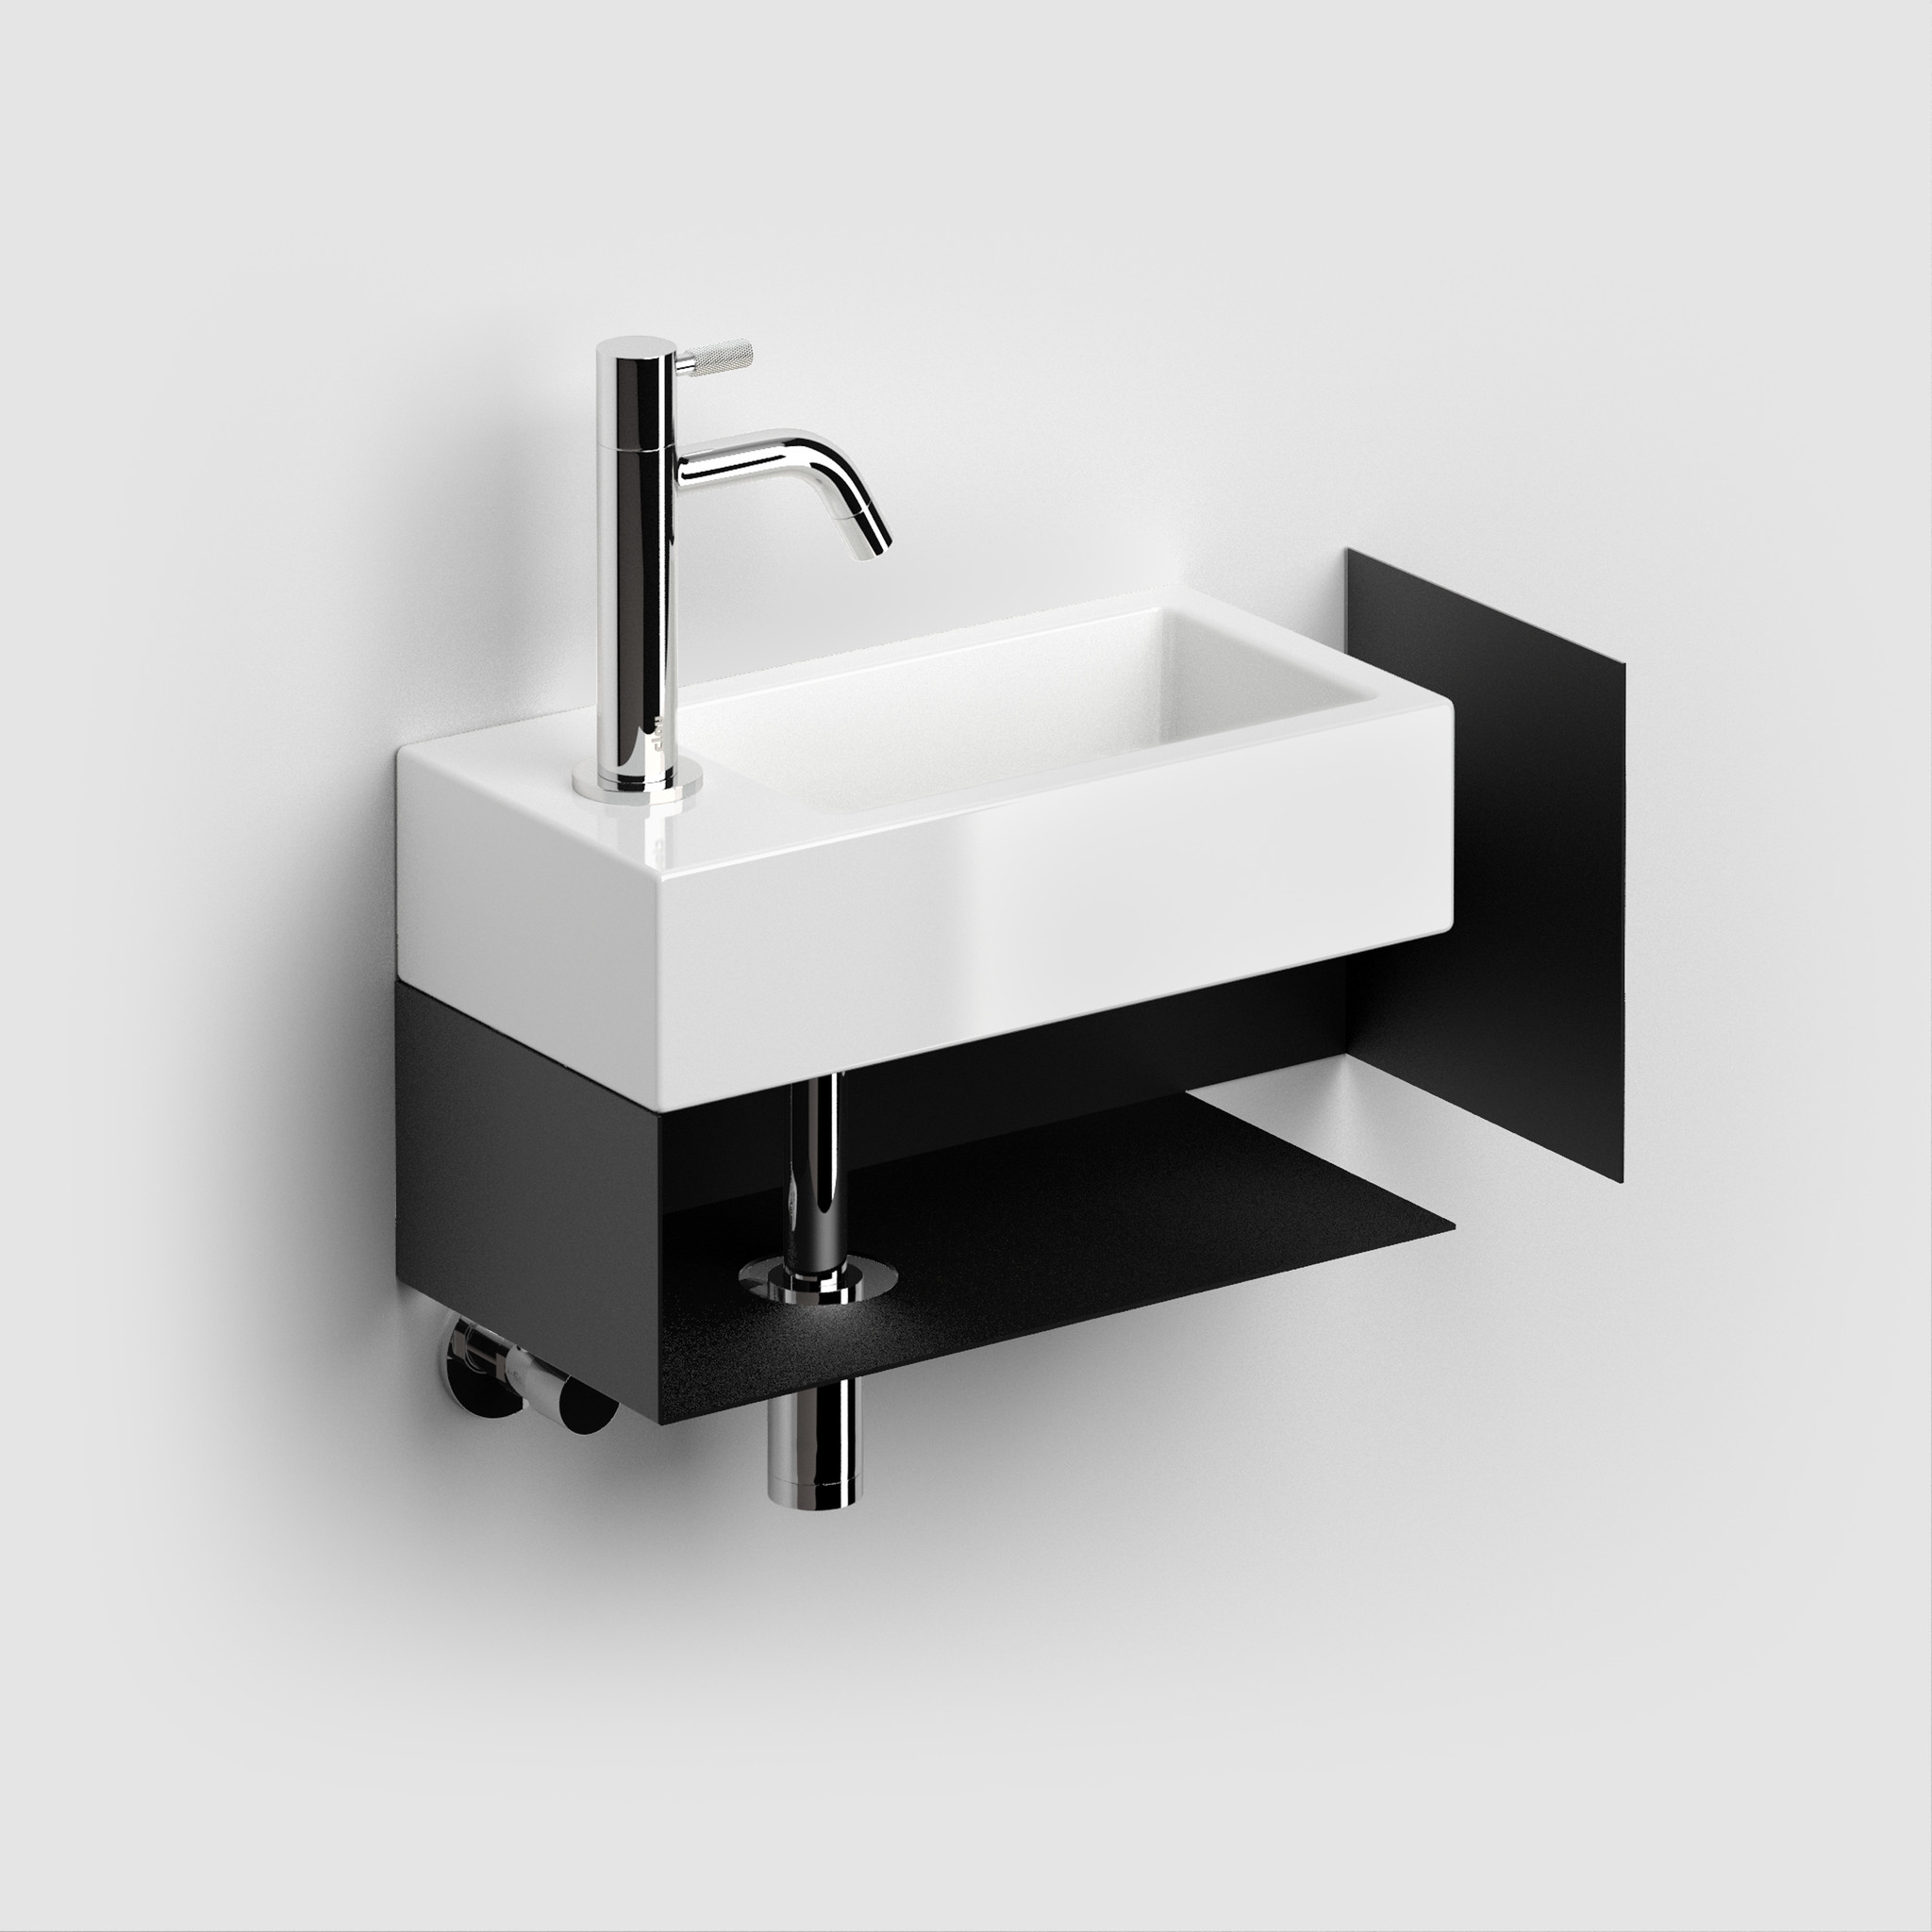 Flush open cabinet with towel holder for Flush 3